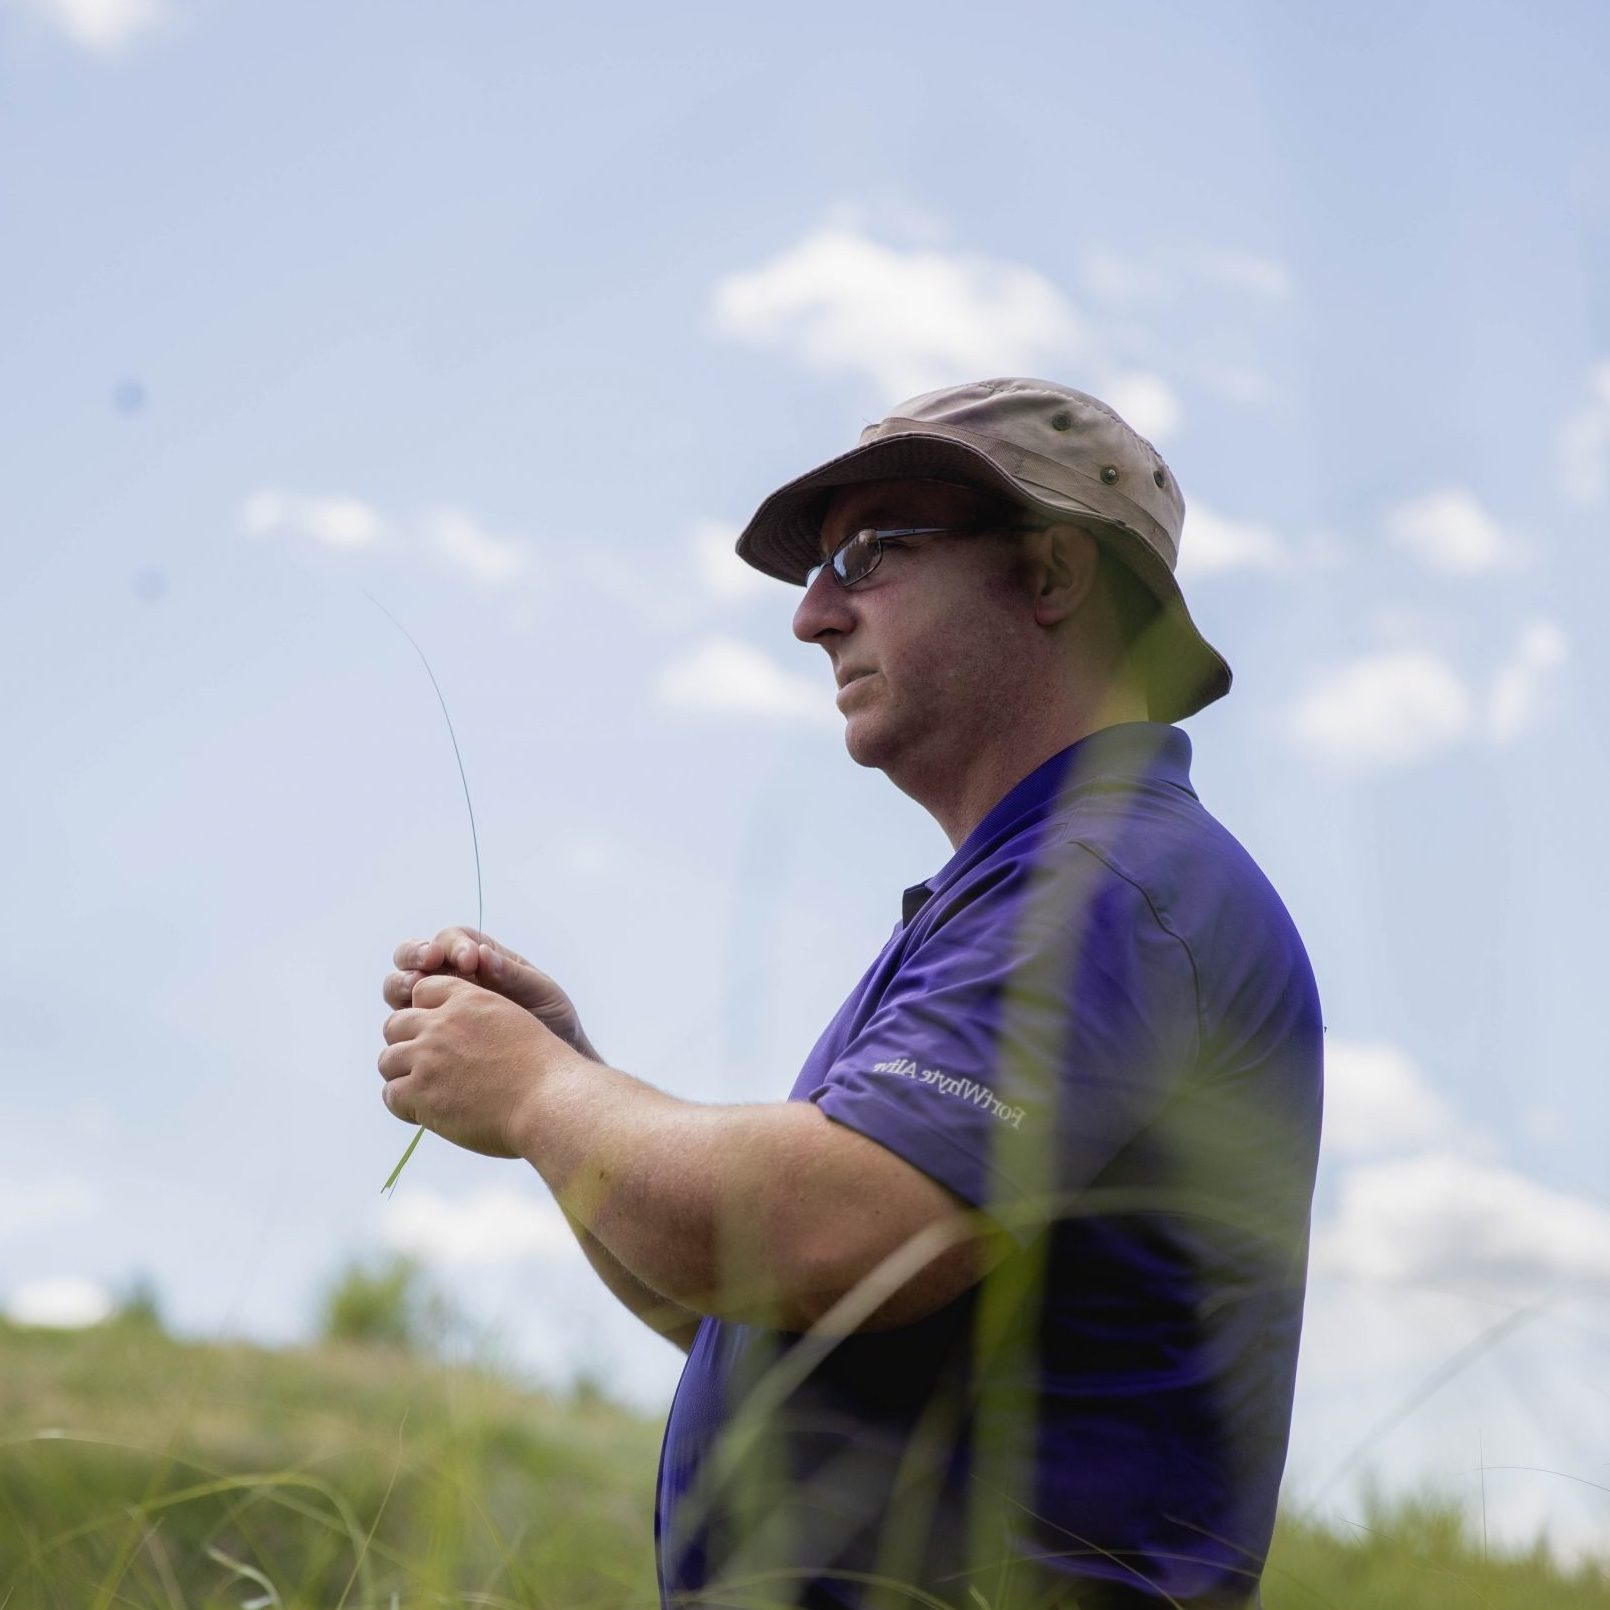 A FortWhyte Educator holds a blade of grass outside and speaks to an unseen crowd of people.